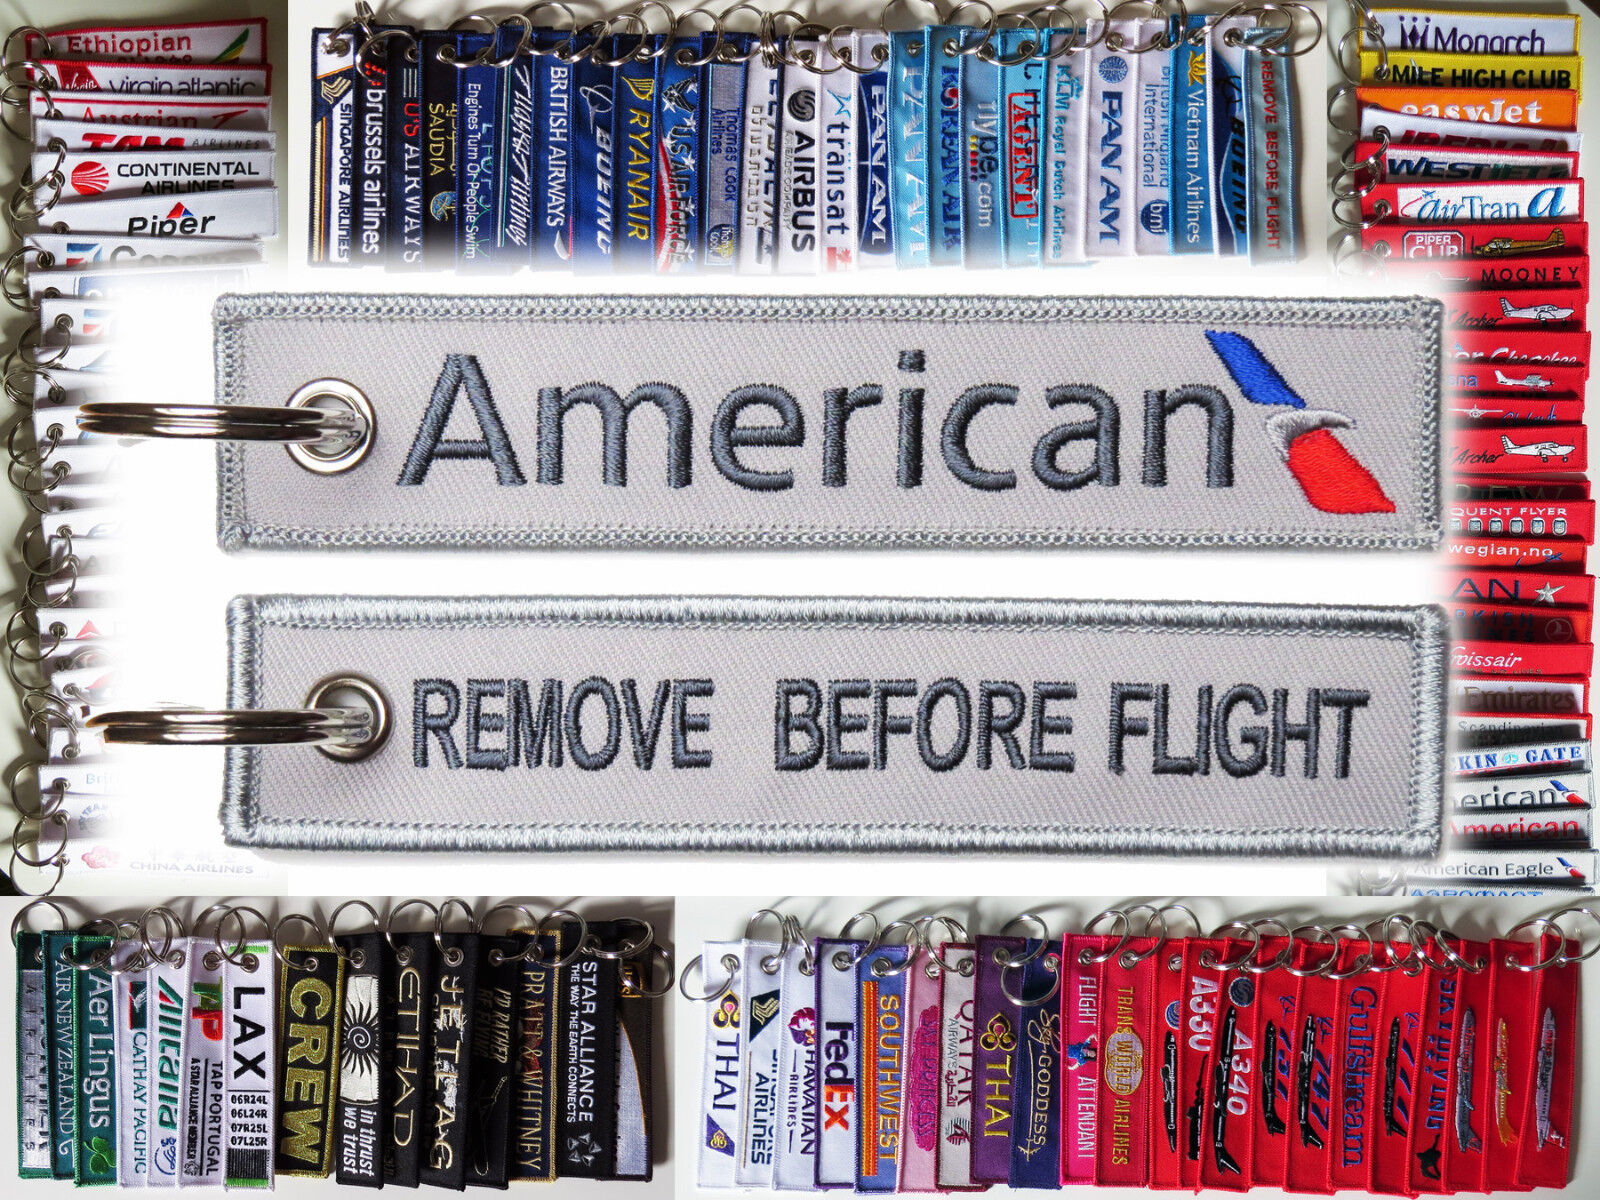 Keyring AMERICAN AIRLINES AA Airline Remove Before Flight keychain for pilot